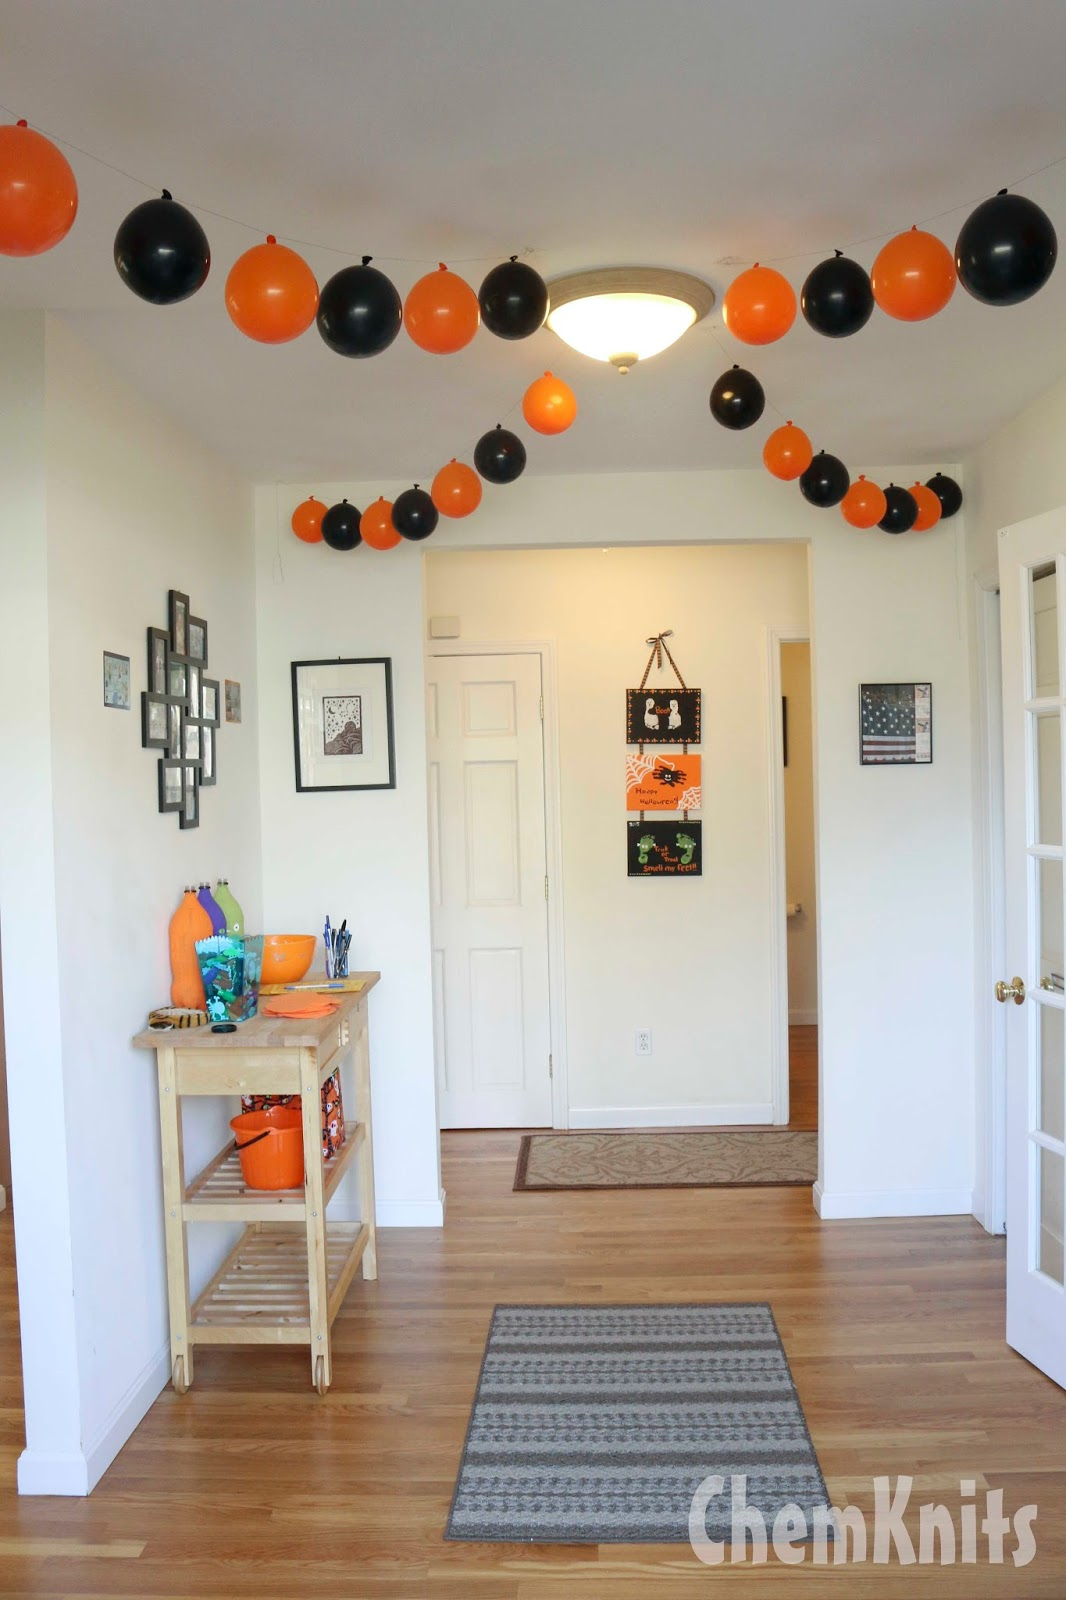 ChemKnits: Lucky's Halloween Birthday Party